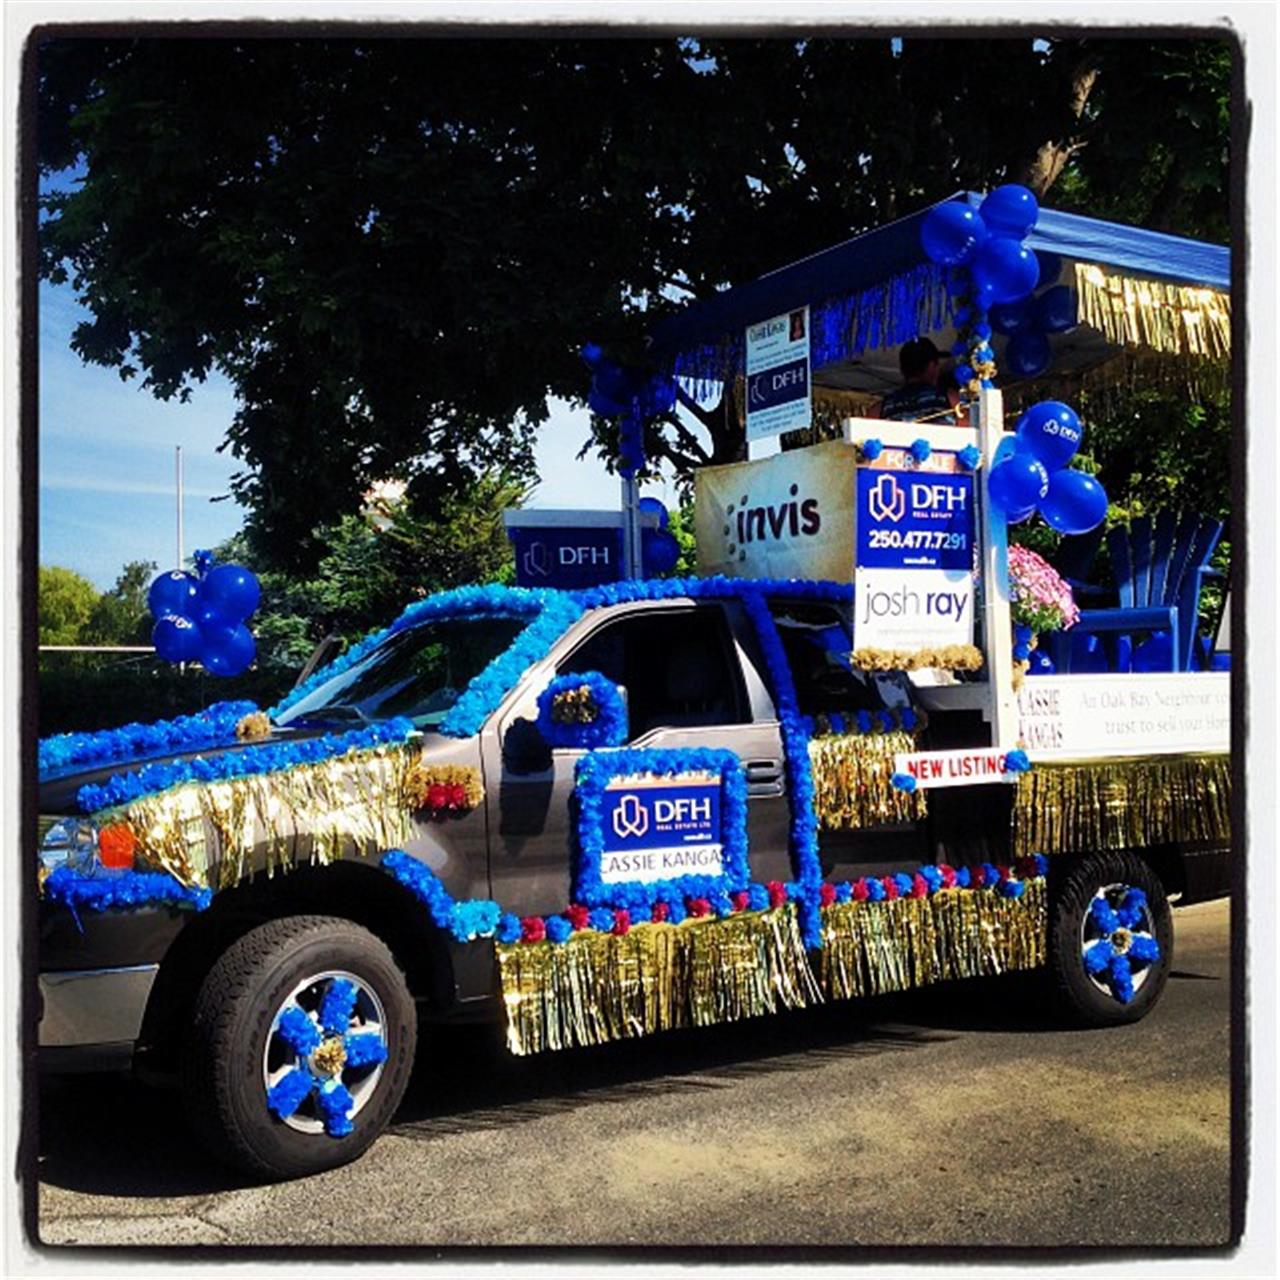 #oakbayteaparty #parade #oakbay #leadingrelocal